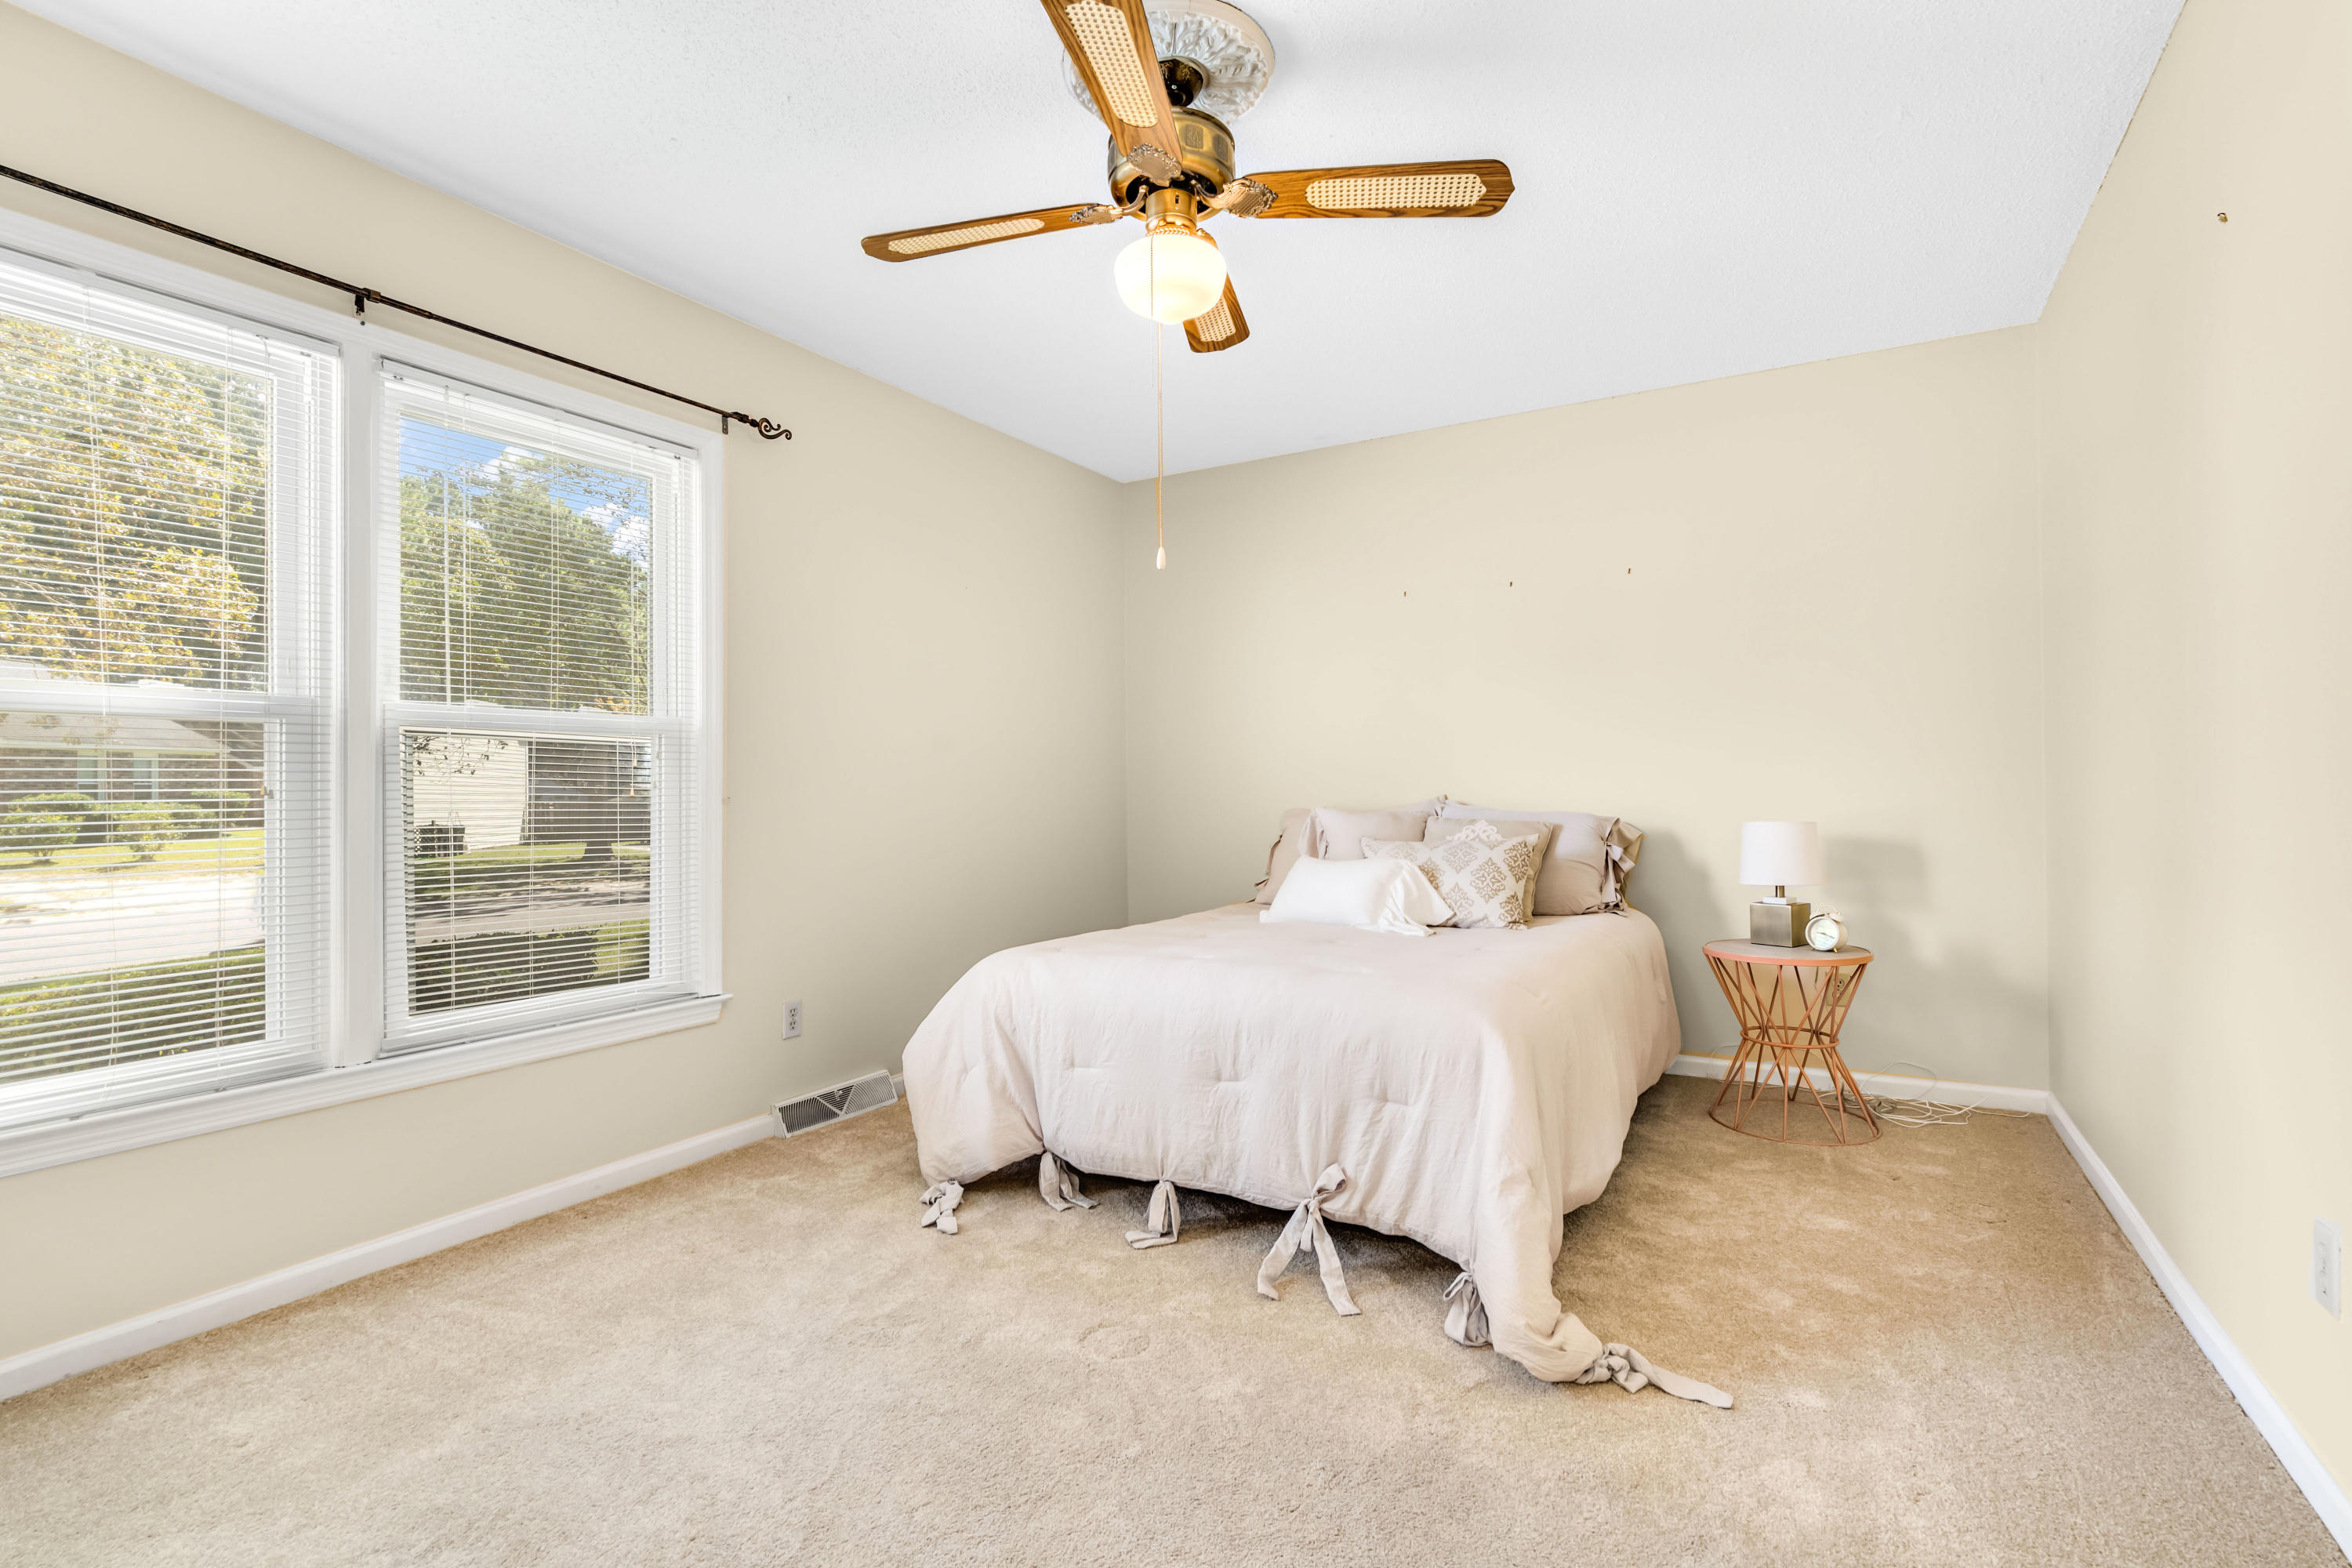 234 Canaberry Circle Summerville, SC 29483